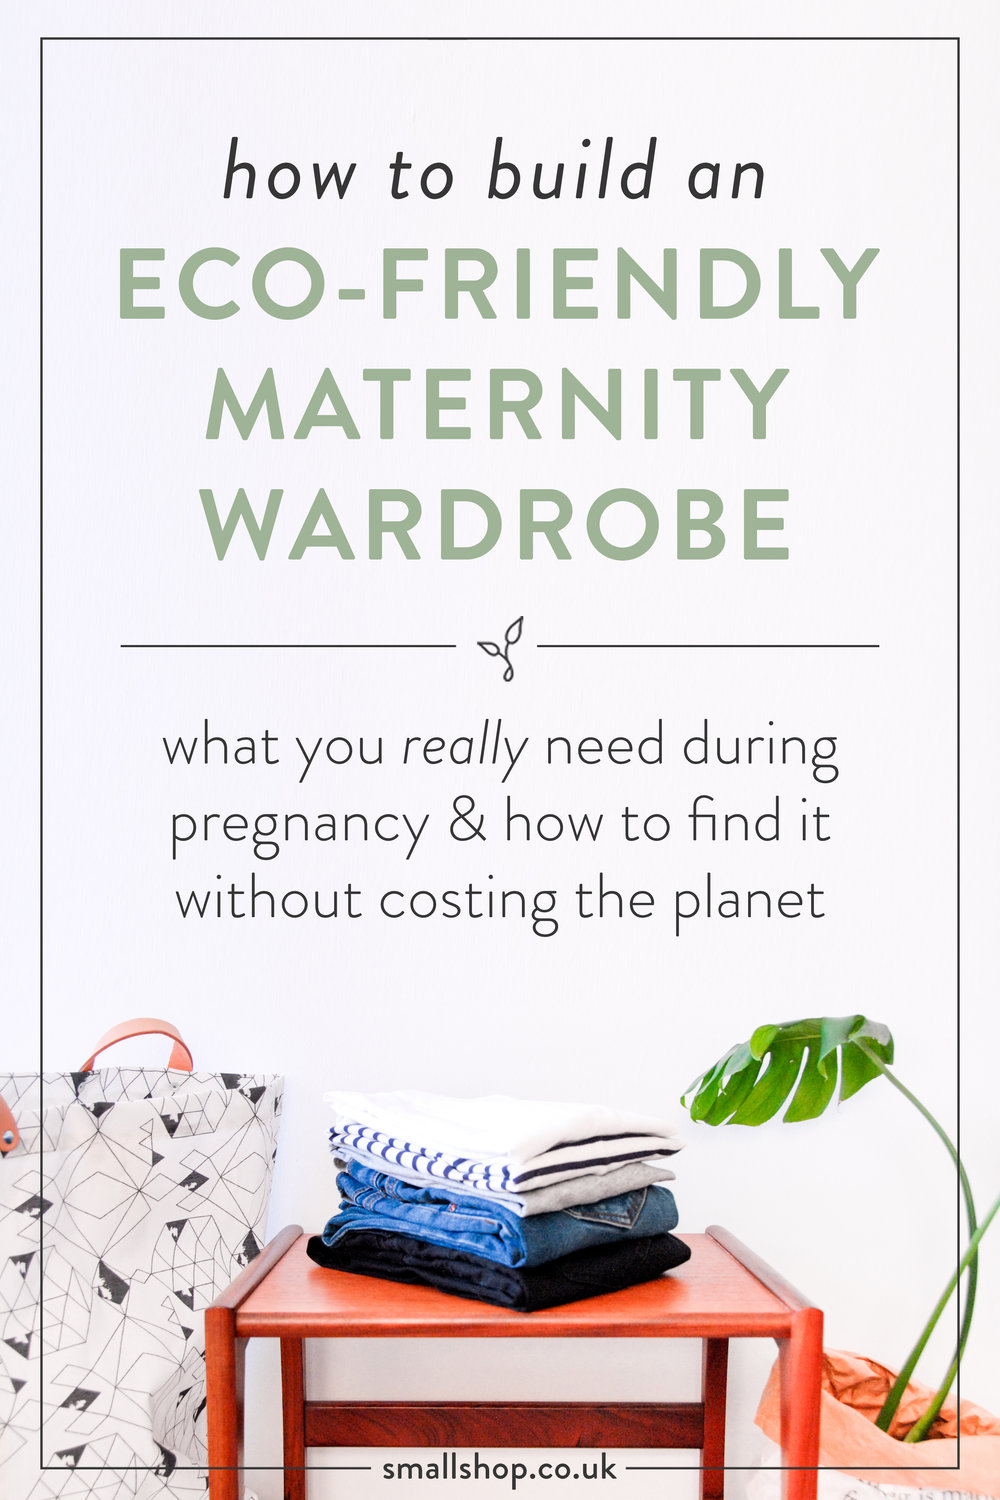 How to build an eco friendly maternity wardrobe